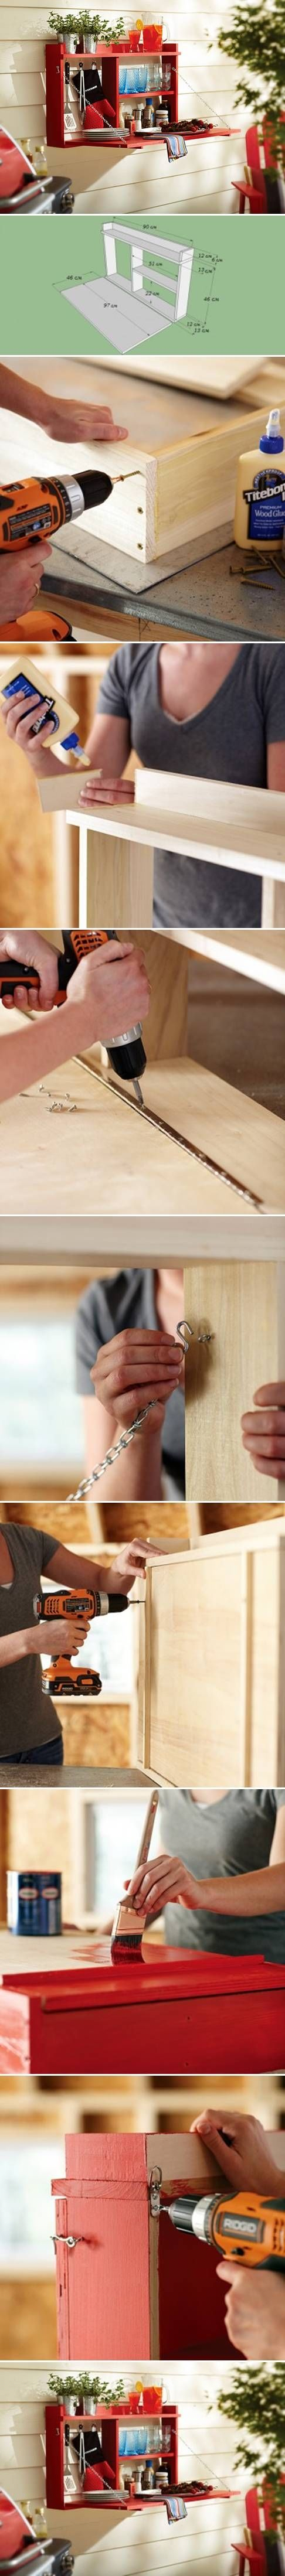 Stunning How To Make A Wall Mounted Folding Table 486 x 4397 · 234 kB · jpeg